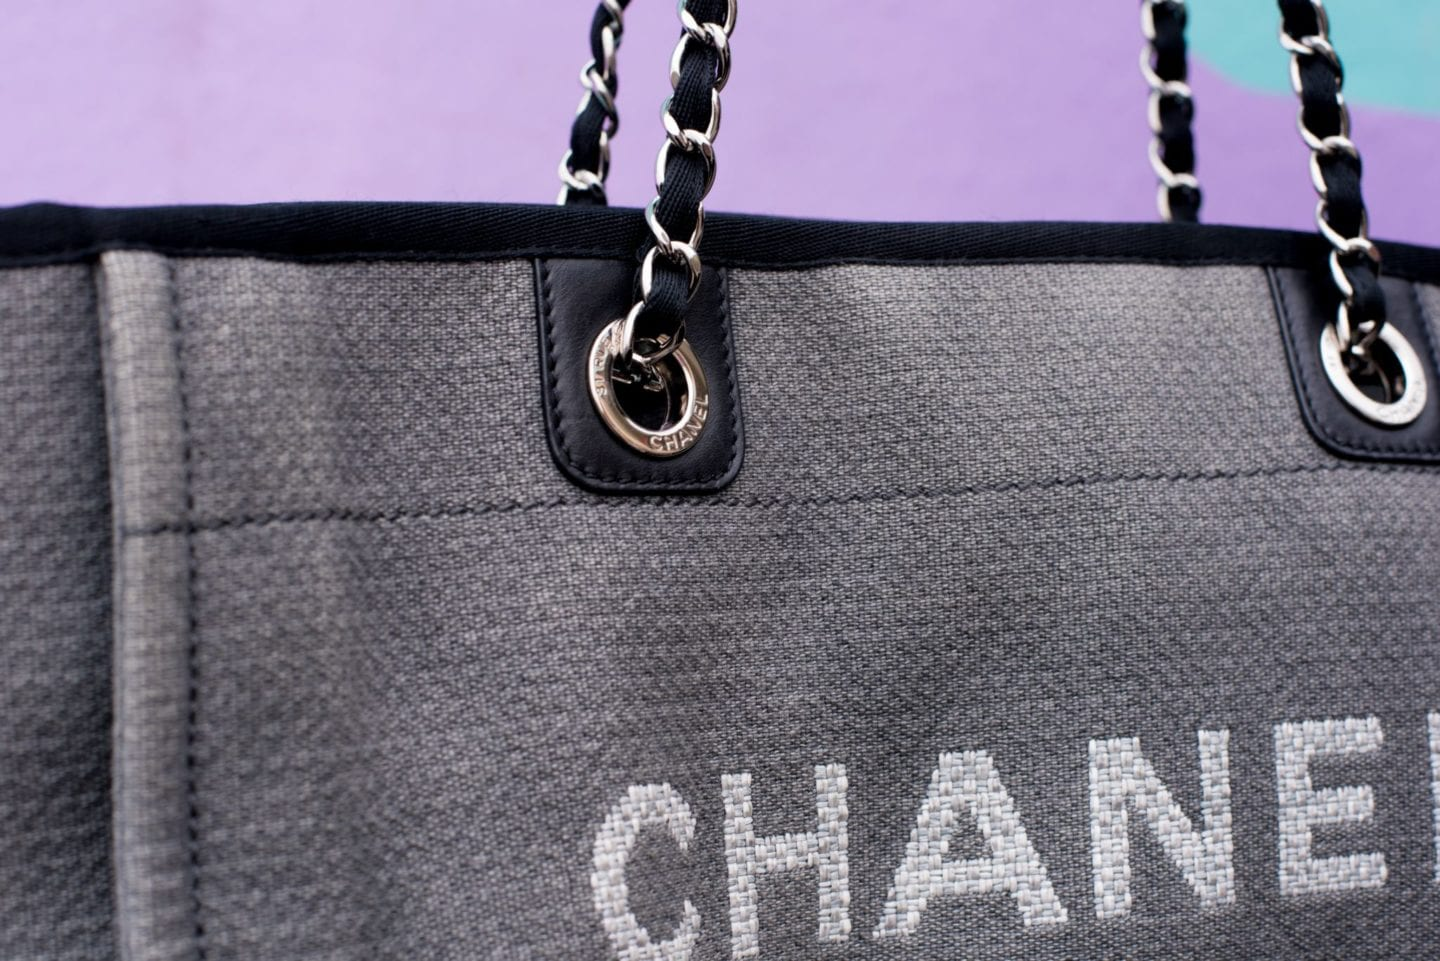 Chanel Deauville Tote Bag detail grey canvas tote bag eyelets